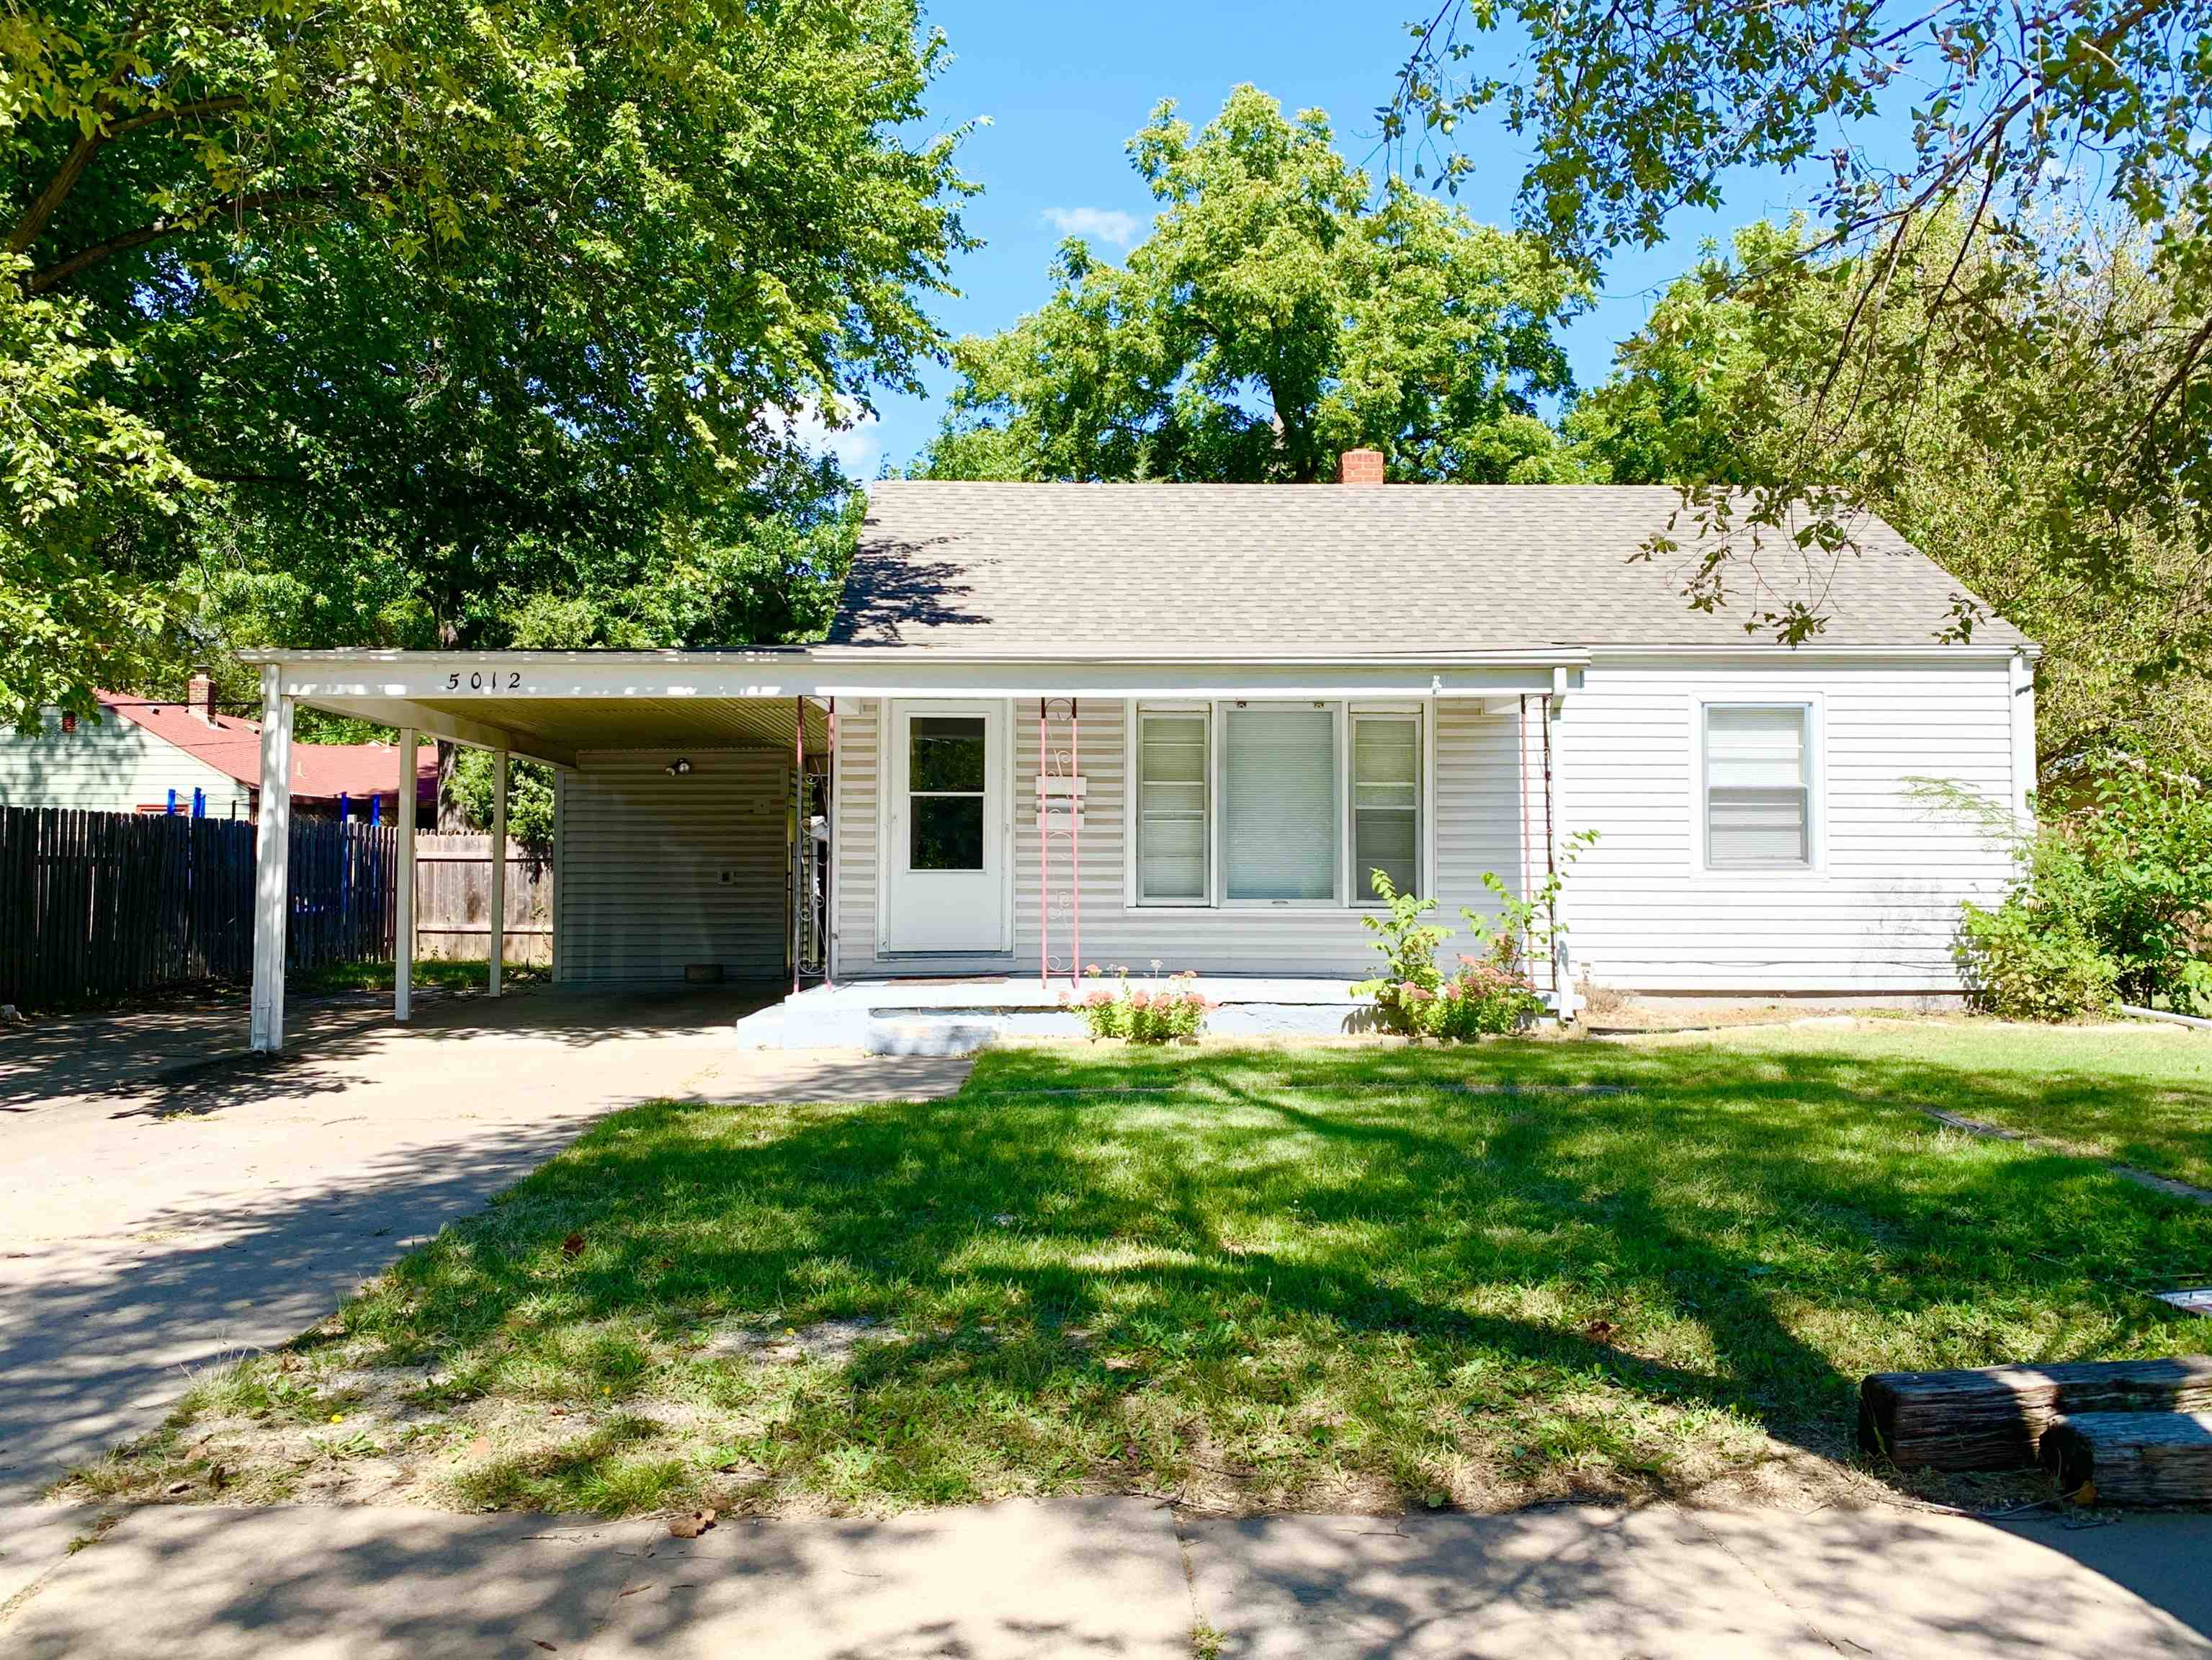 Come home to this super cute ranch home in southeast Wichita. This home shows pride of ownership and